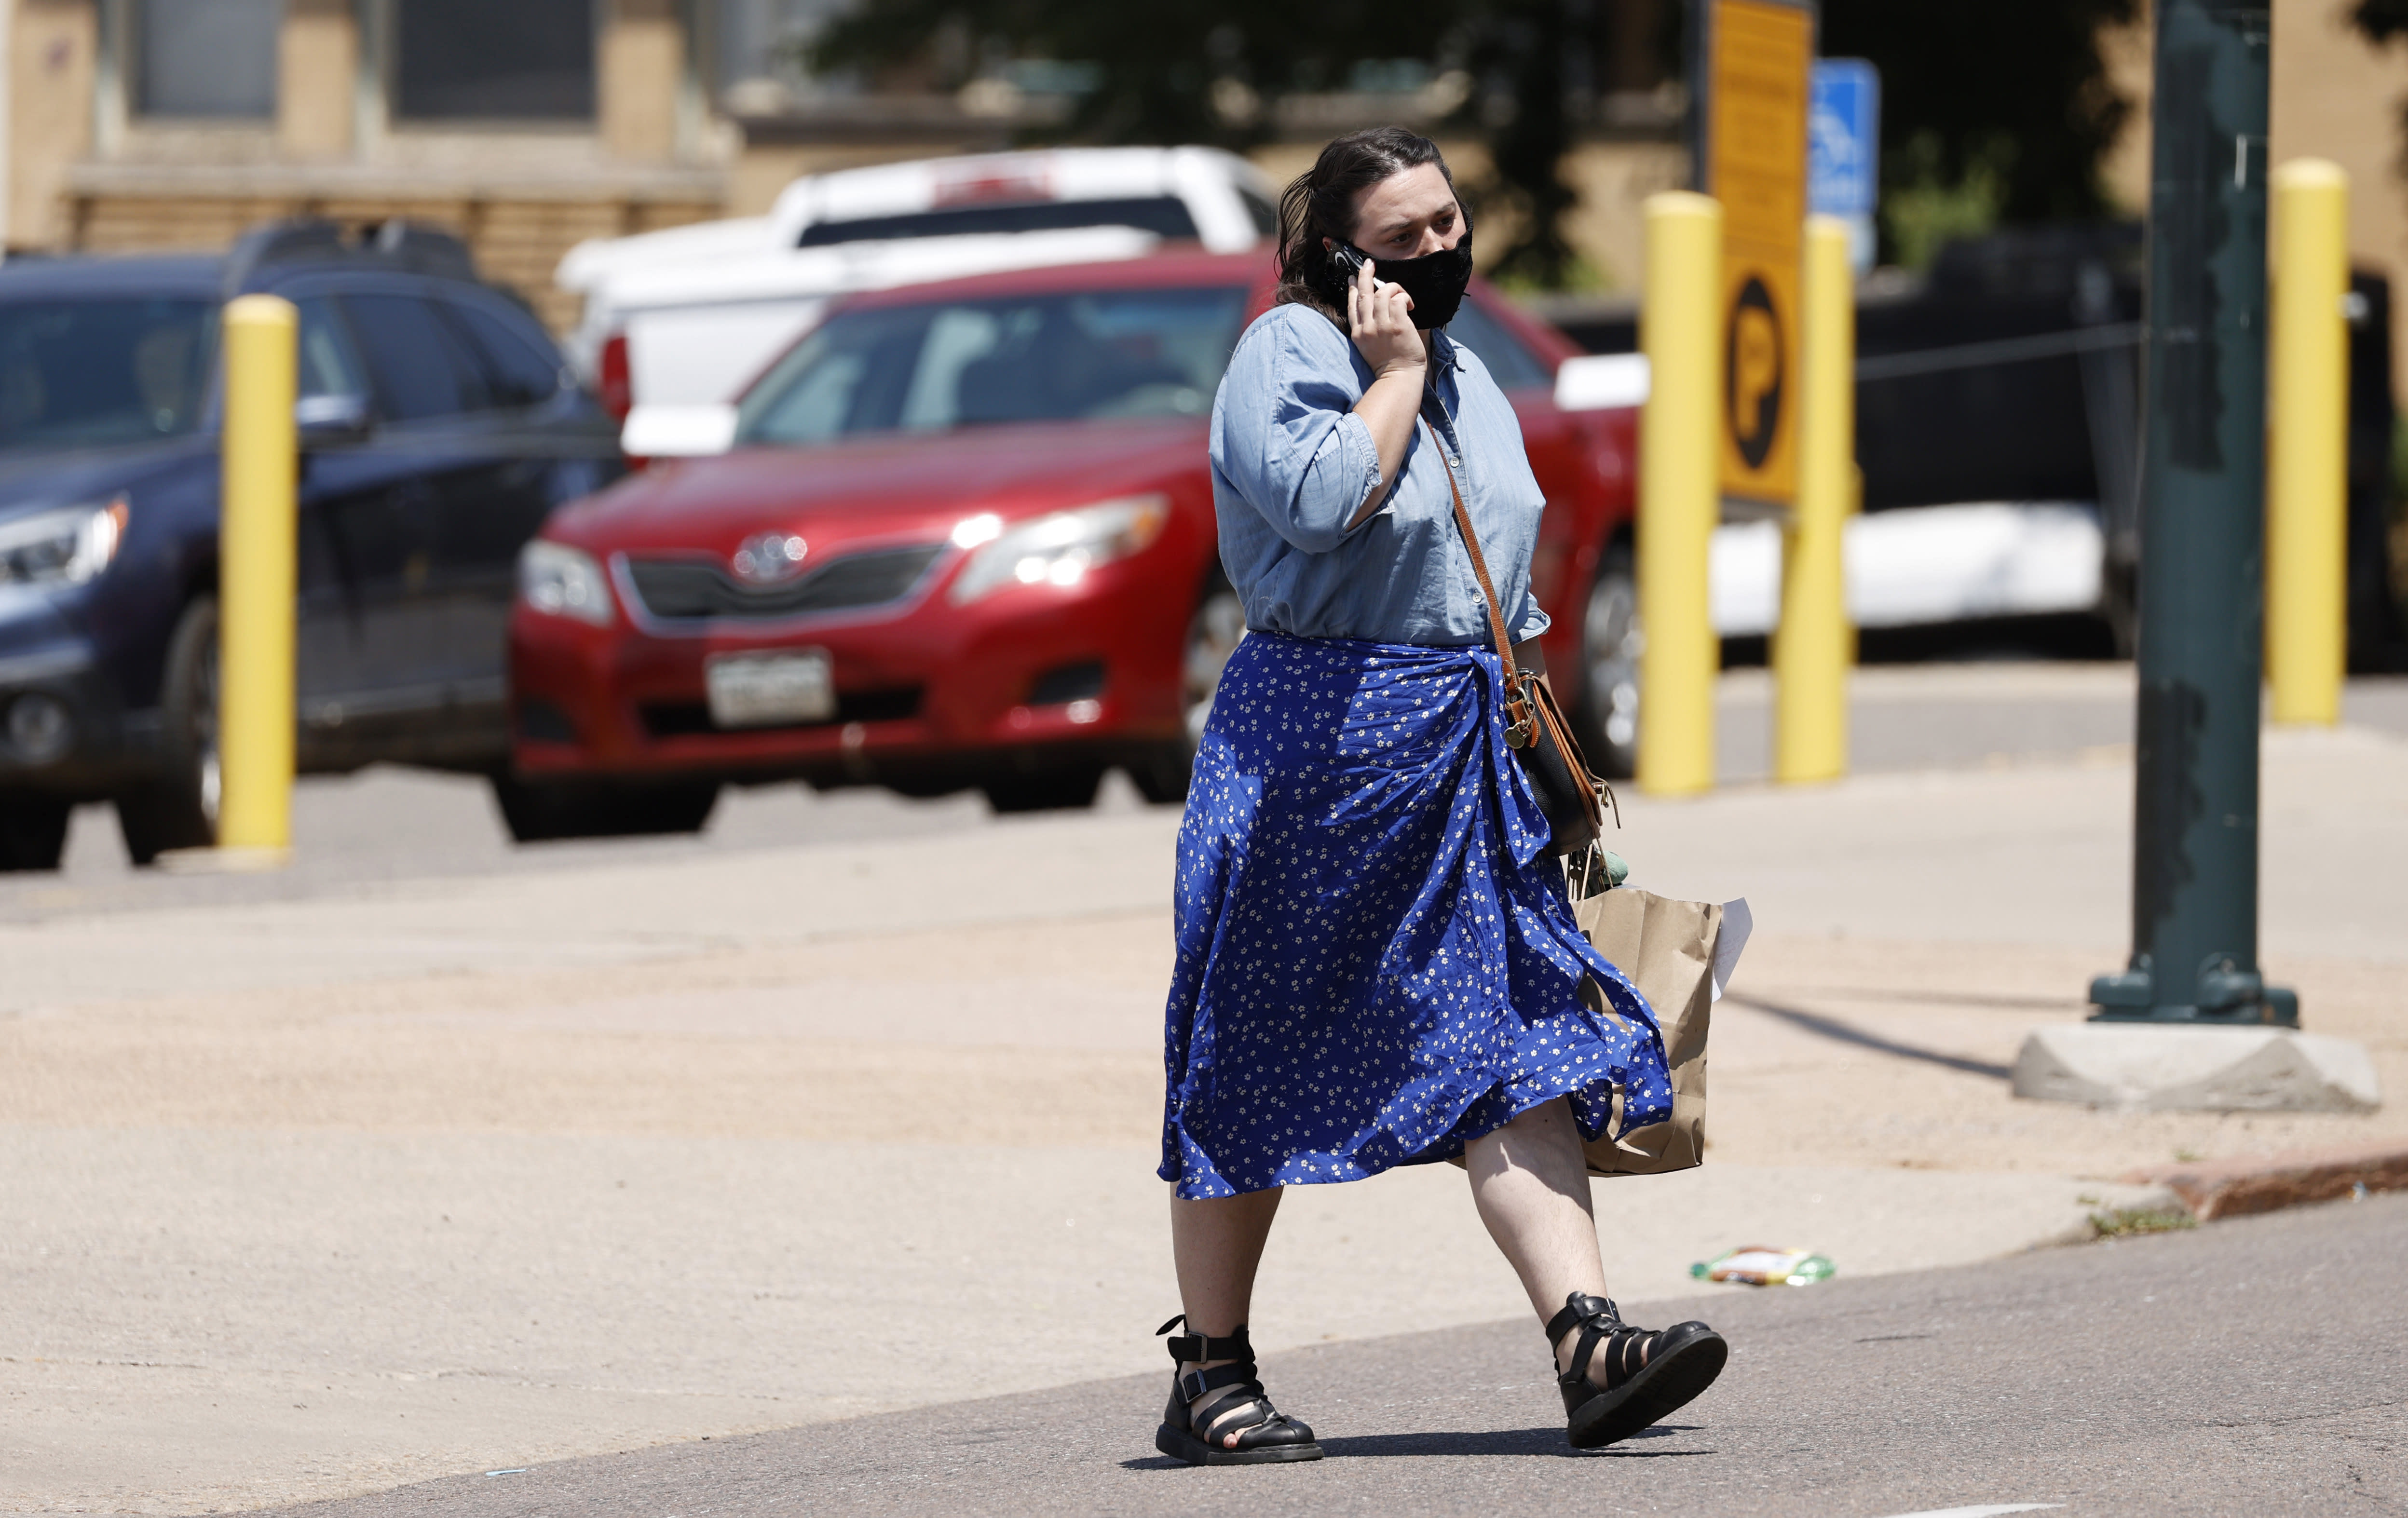 A pedestrian wears a face mask while chatting on a mobile device while crossing Grant Street near 8th Avenue Tuesday, July 21, 2020, in Denver. (AP Photo/David Zalubowski)